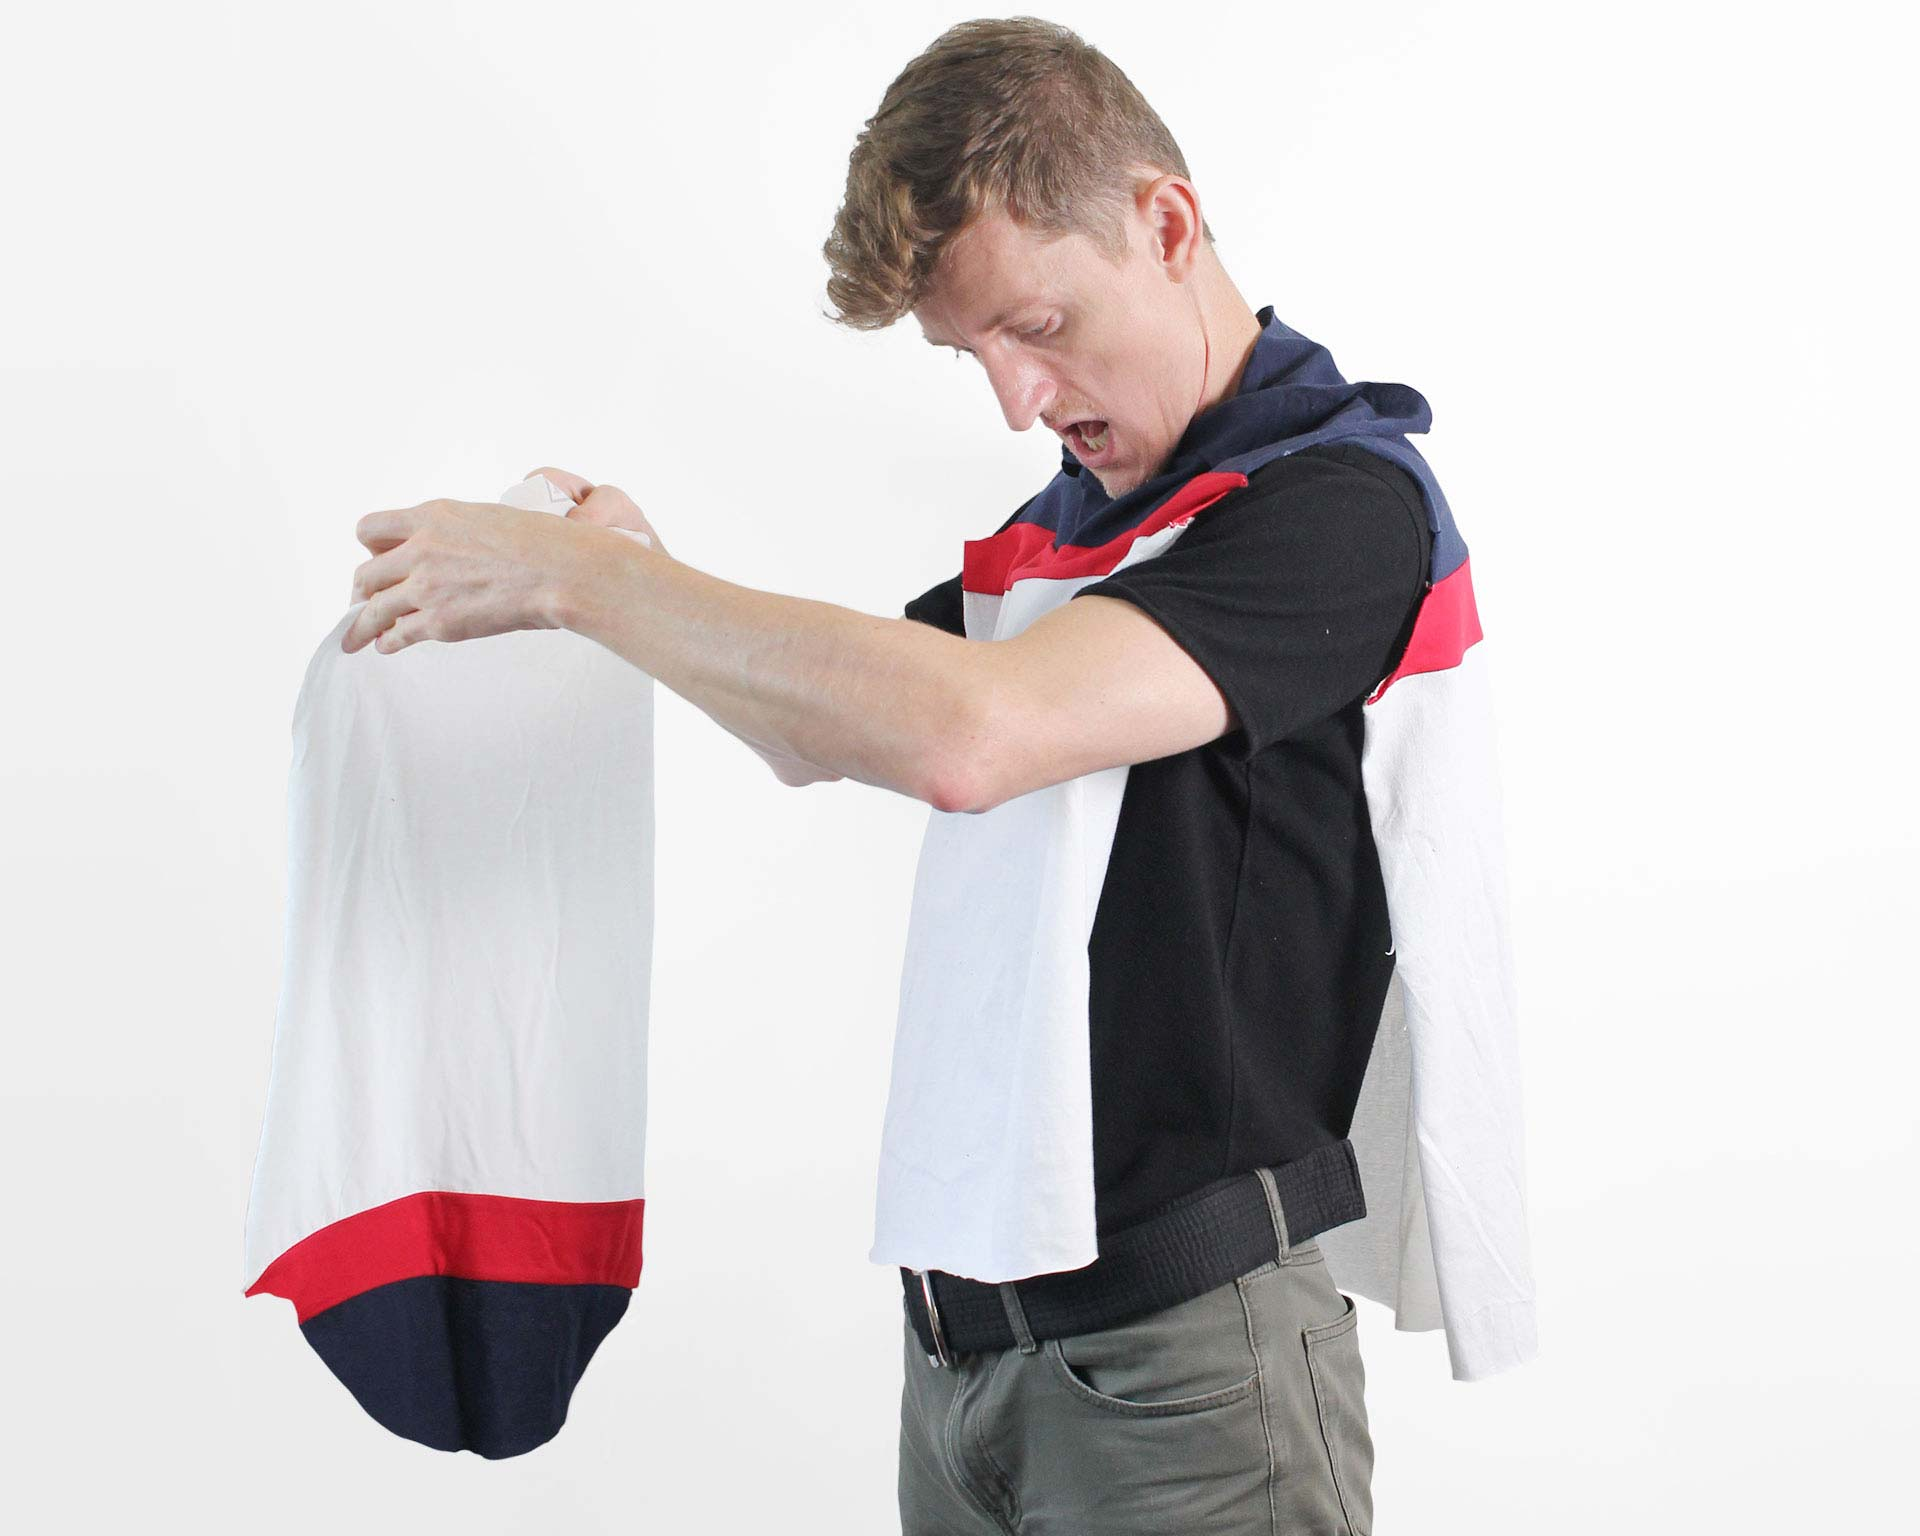 Holding various parts of a polo shirt in progress